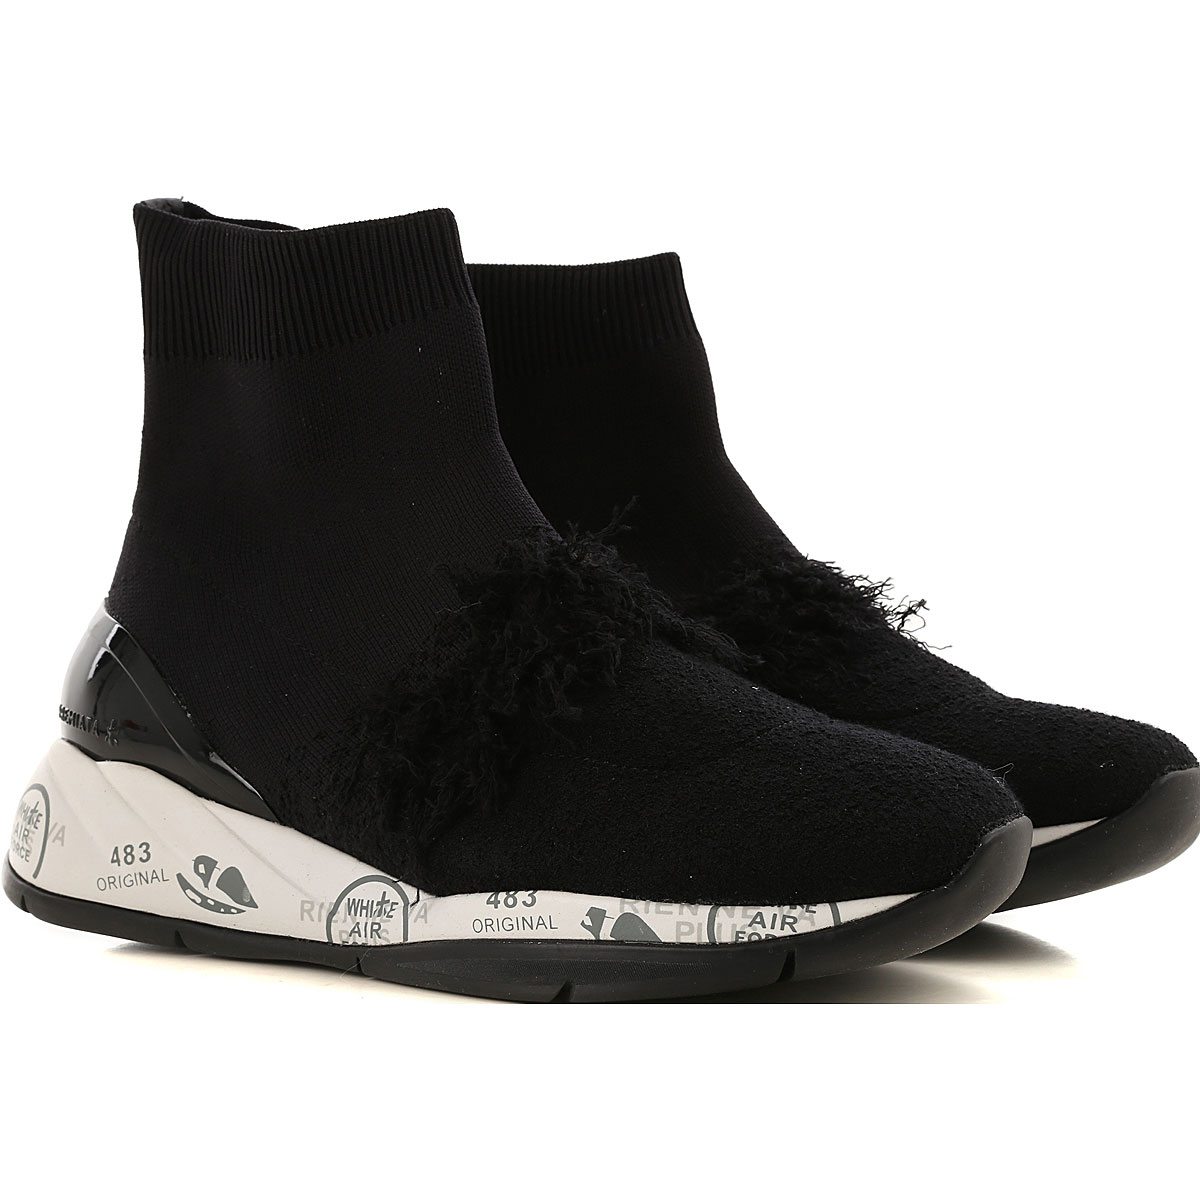 Premiata Boots for Women Booties On Sale in Outlet USA - GOOFASH